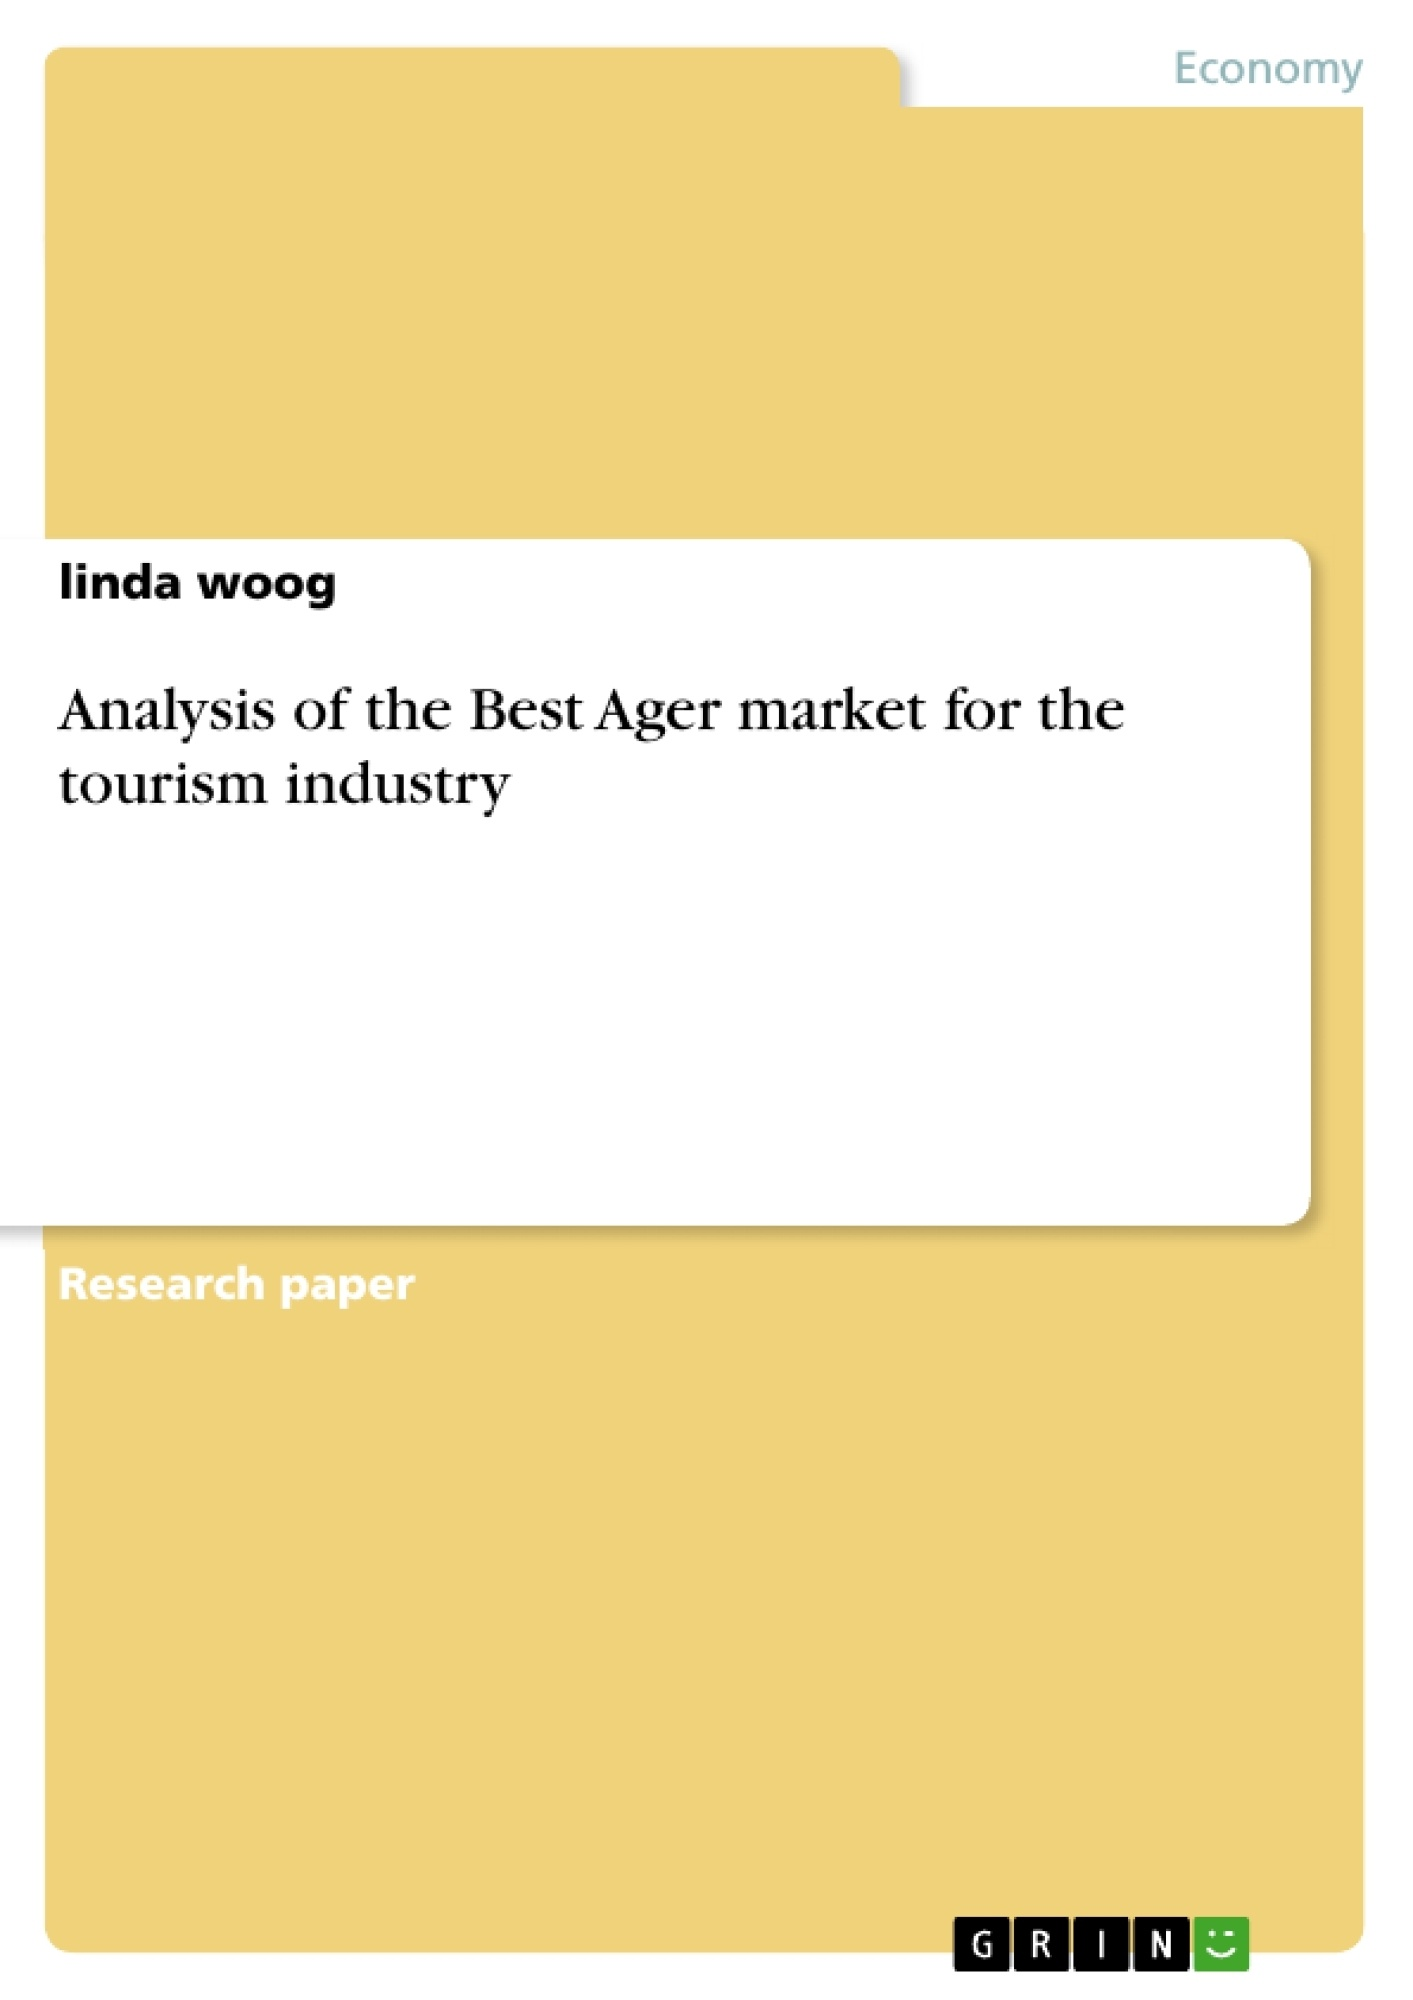 Tourism industry research paper